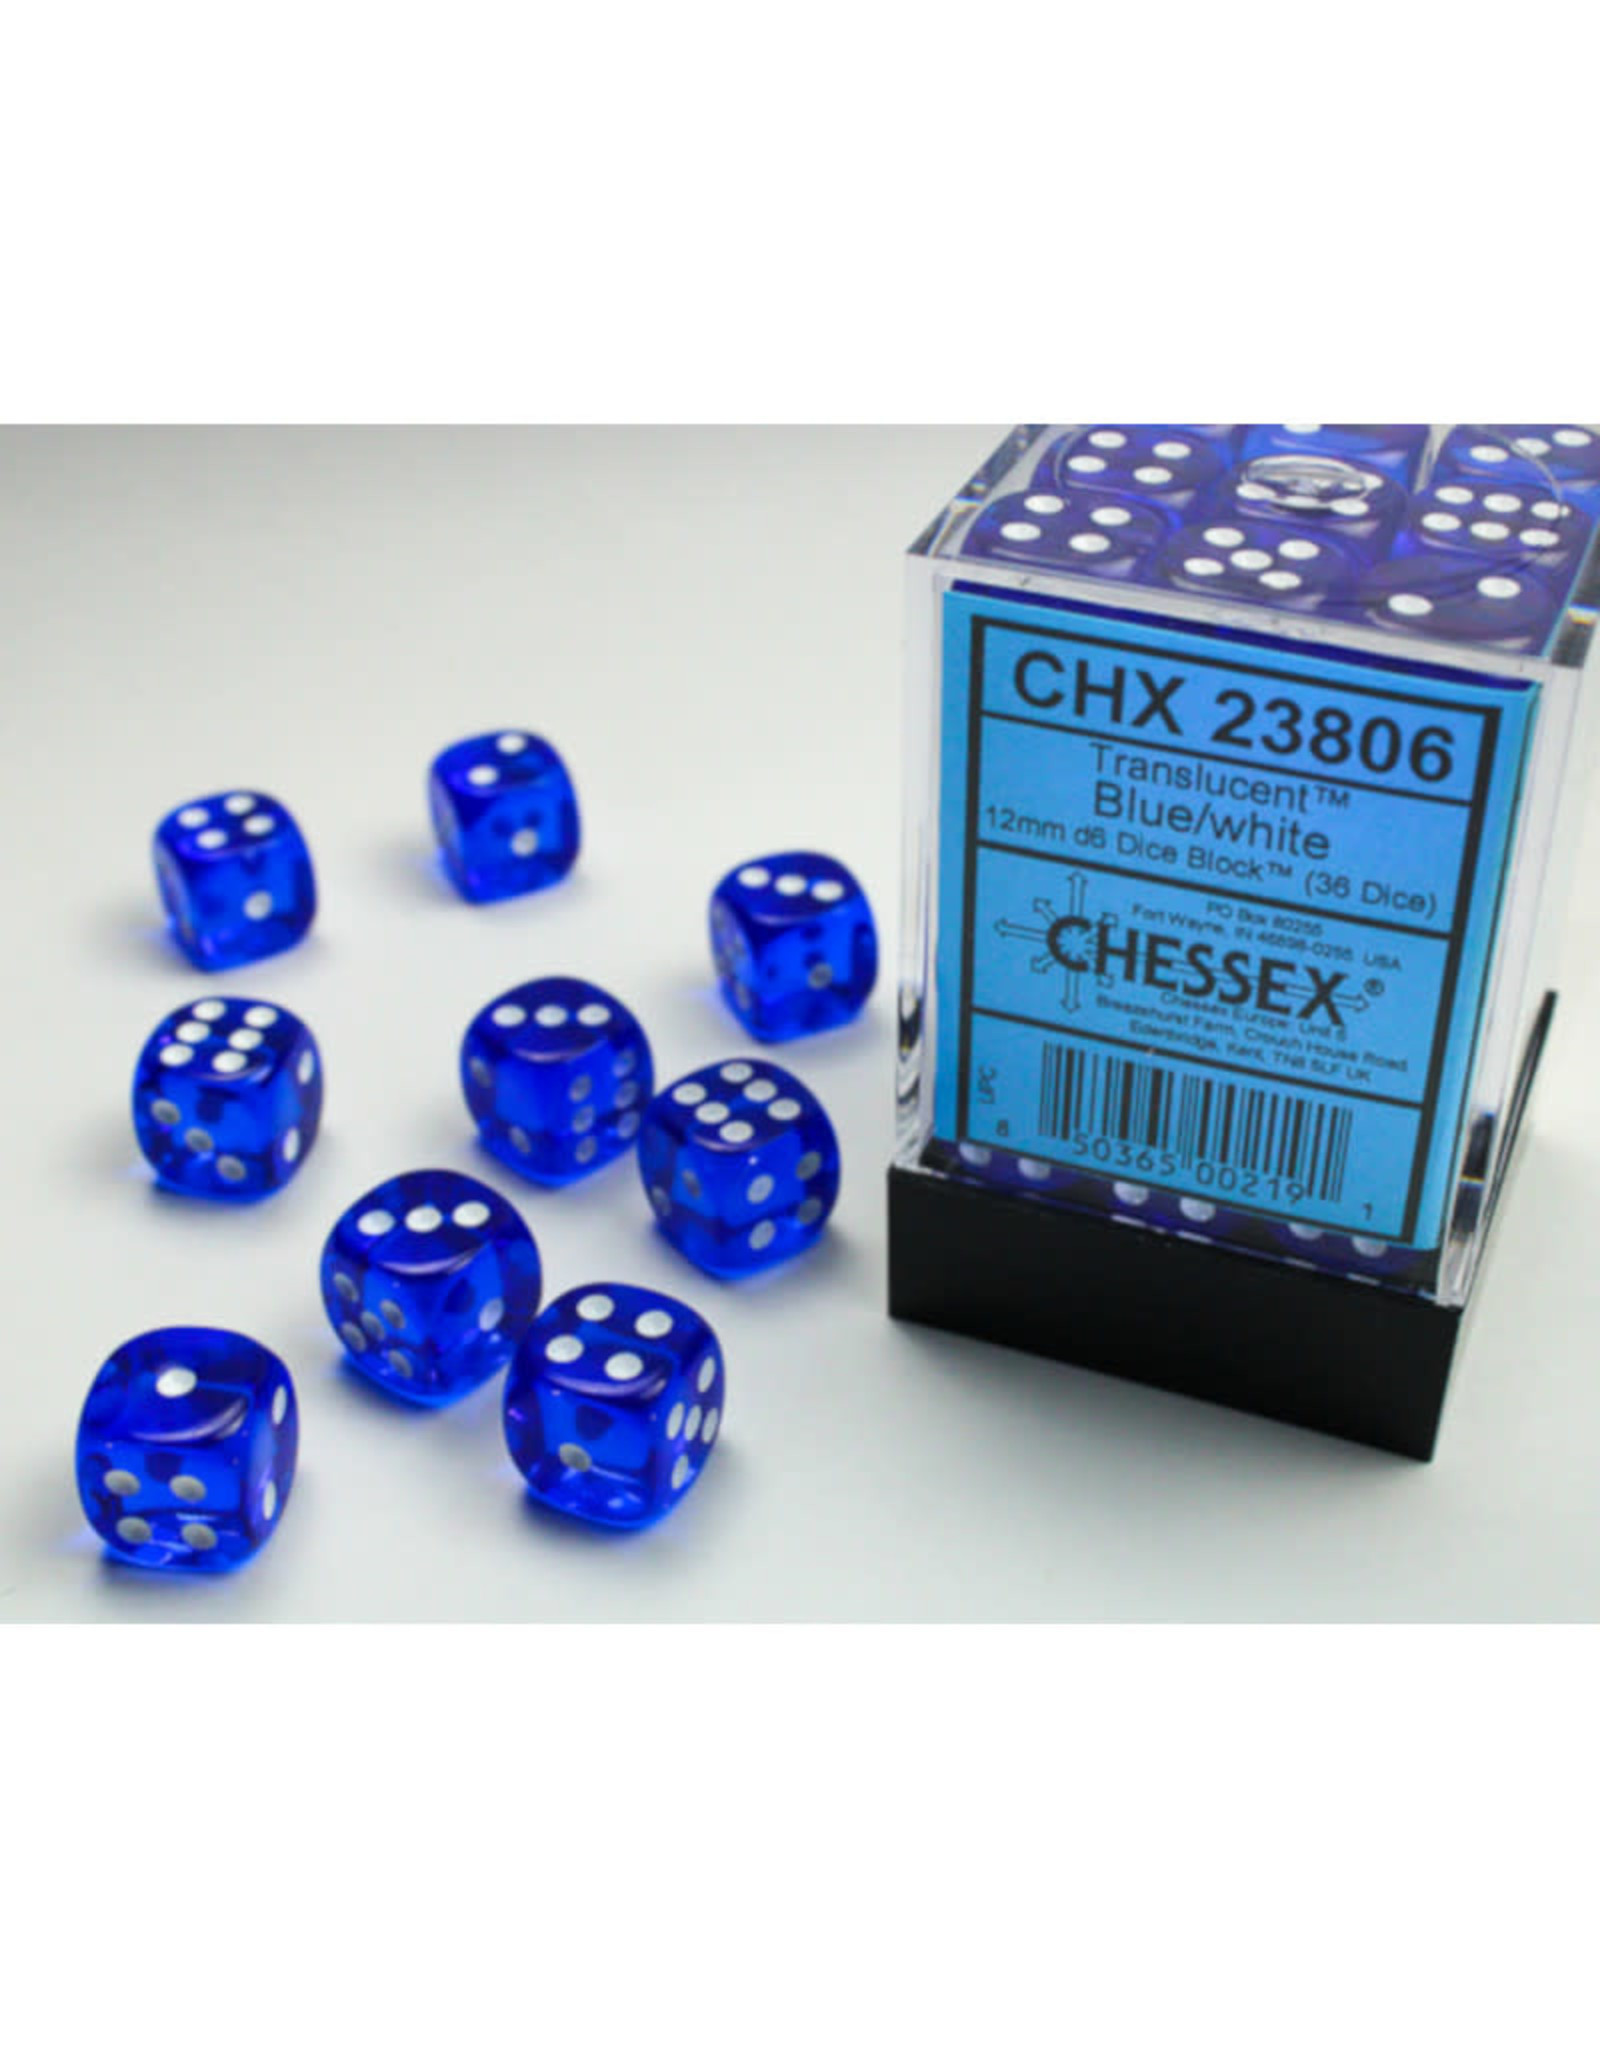 Chessex D6 Dice: 12mm Translucent Blue/White (36)